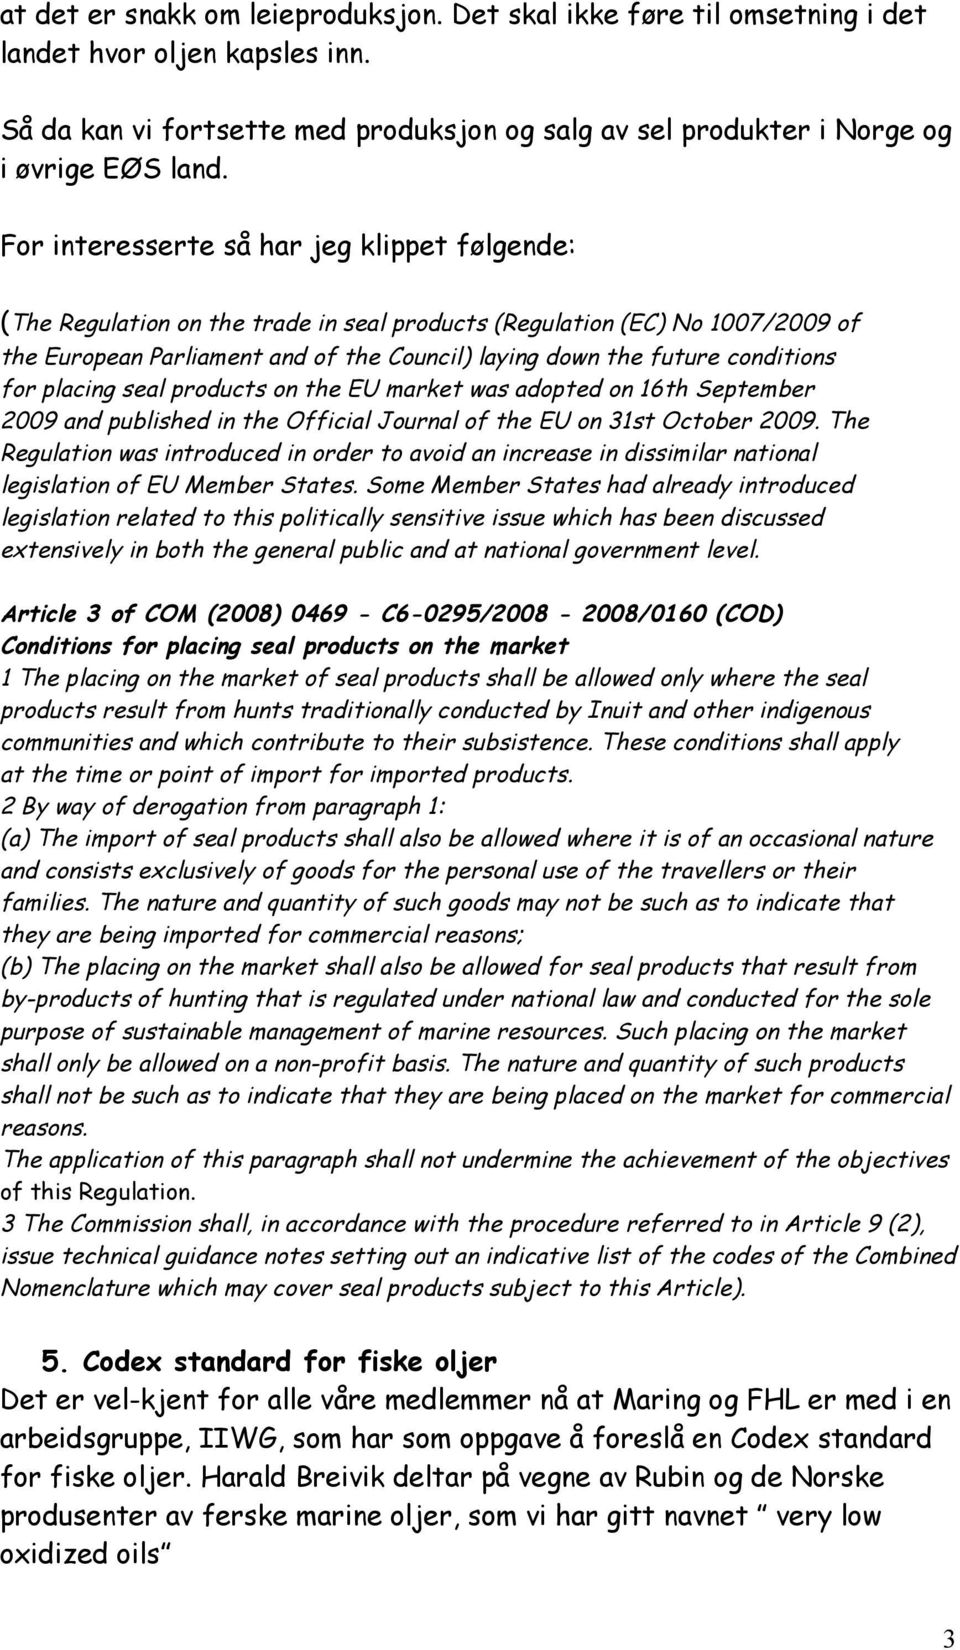 conditions for placing seal products on the EU market was adopted on 16th September 2009 and published in the Official Journal of the EU on 31st October 2009.